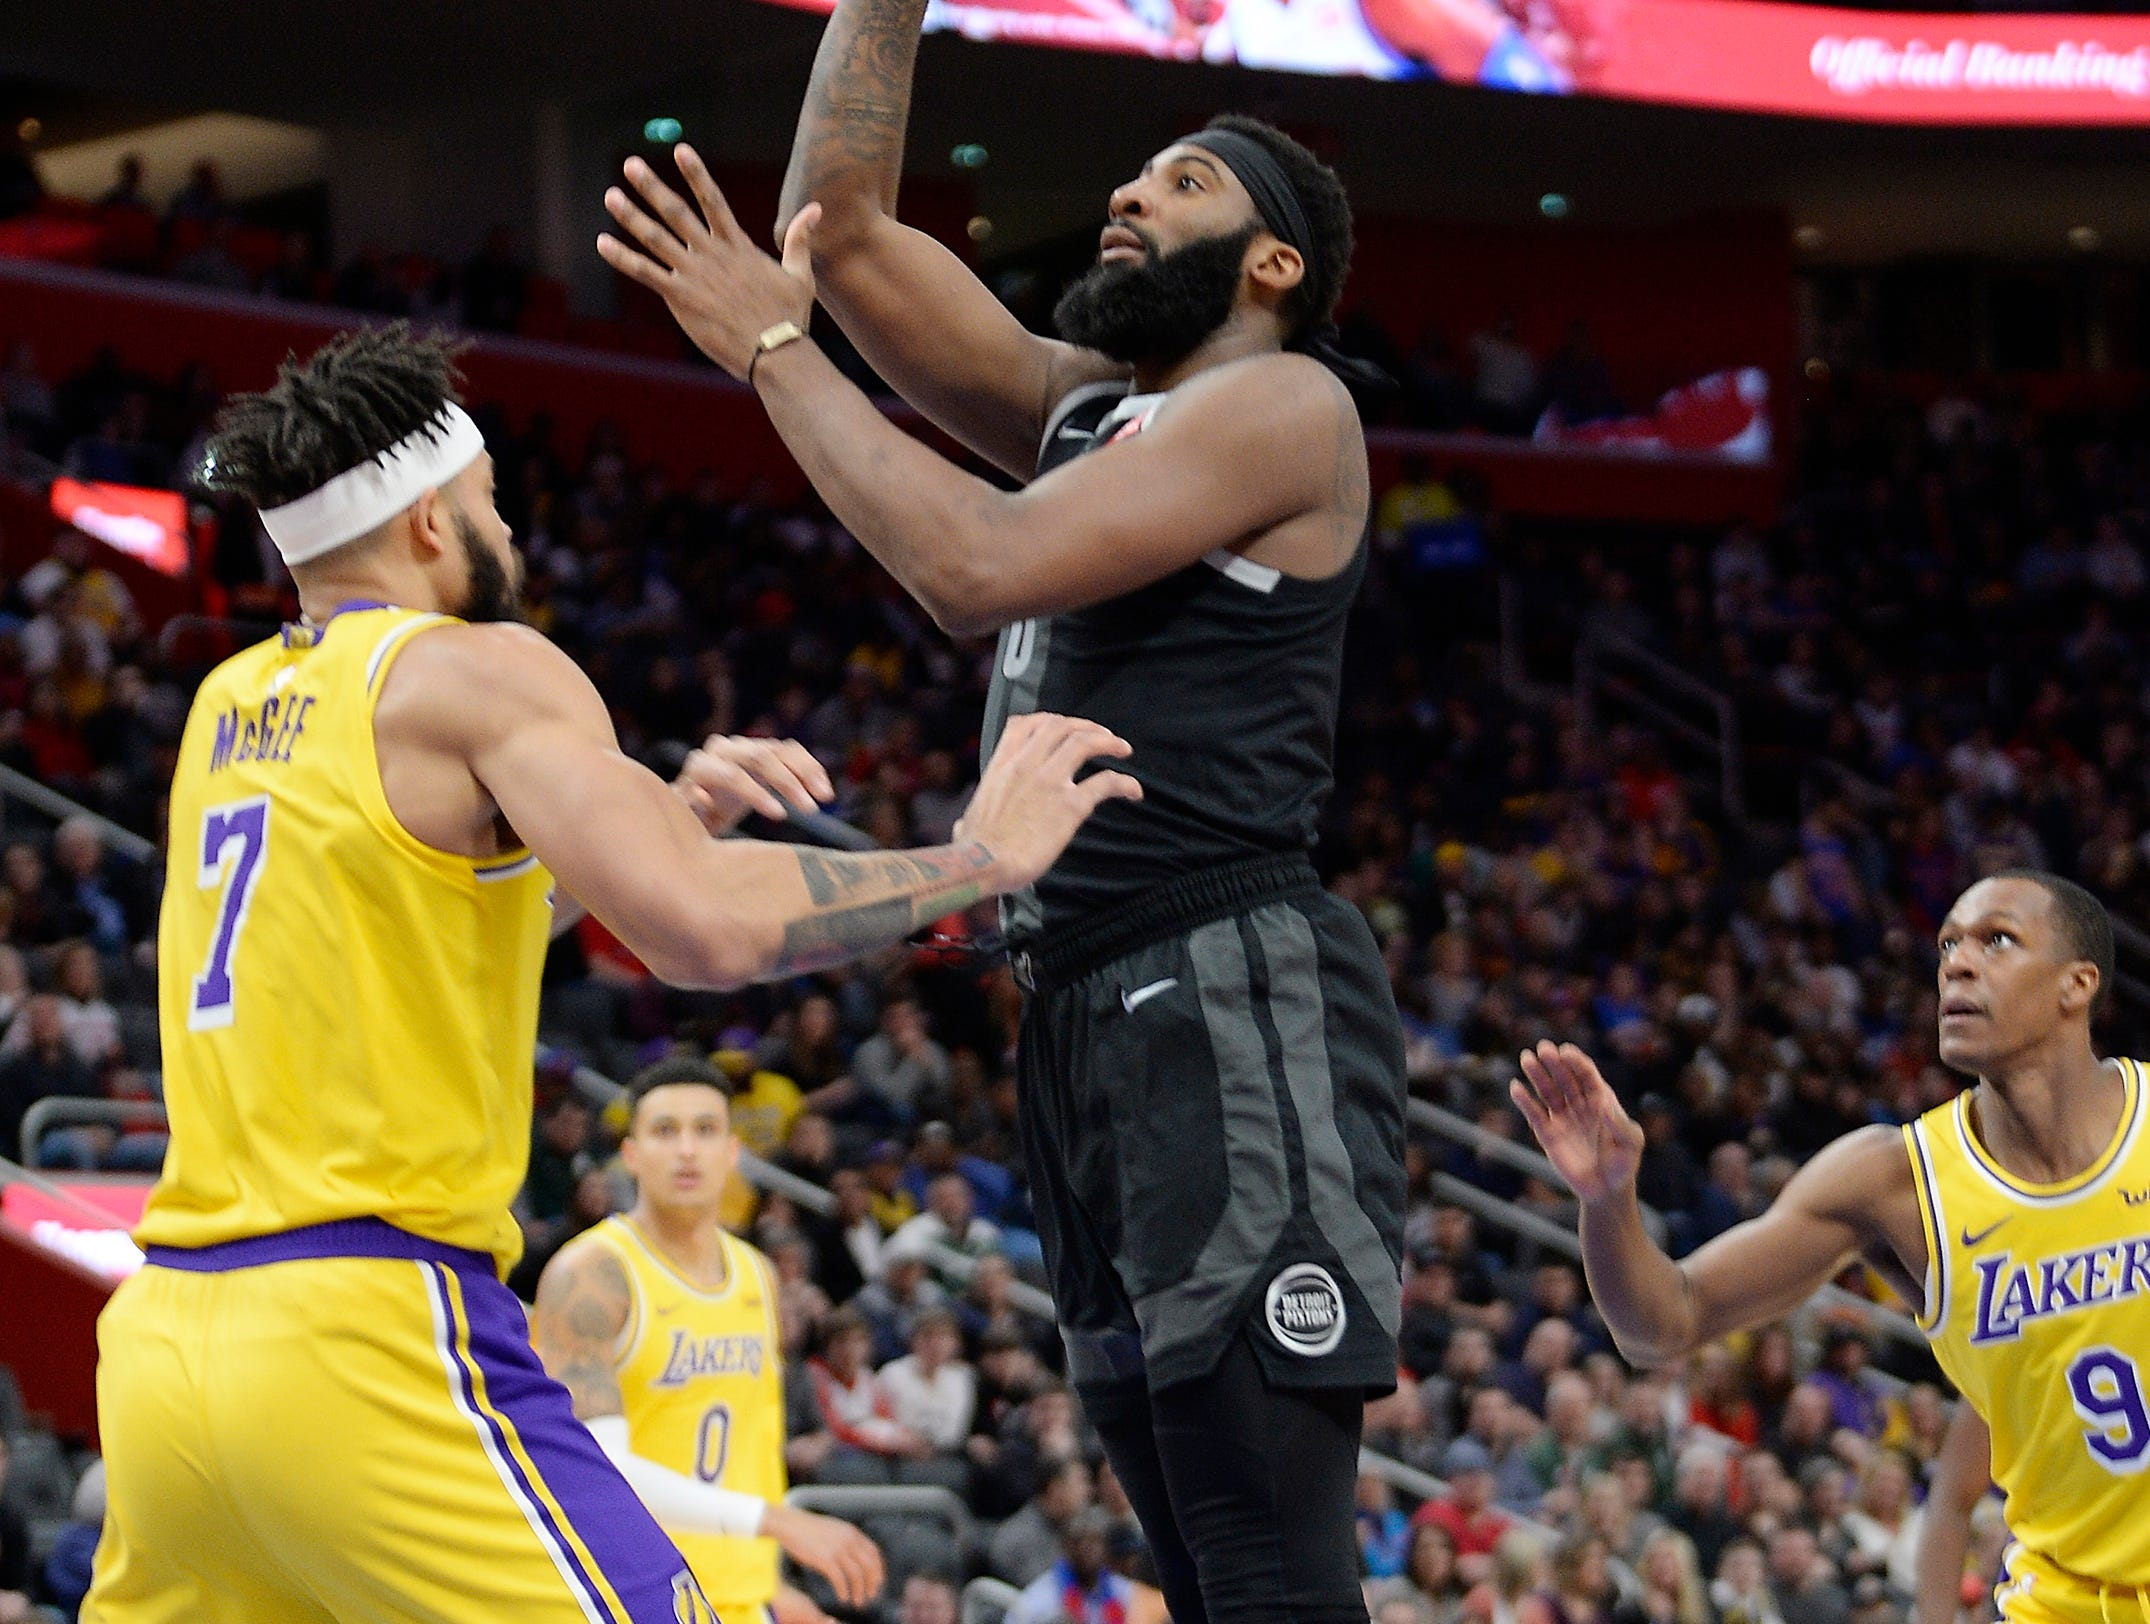 Pistons' Andre Drummond shoots over Lakers' JaVale McGee in the first quarter.